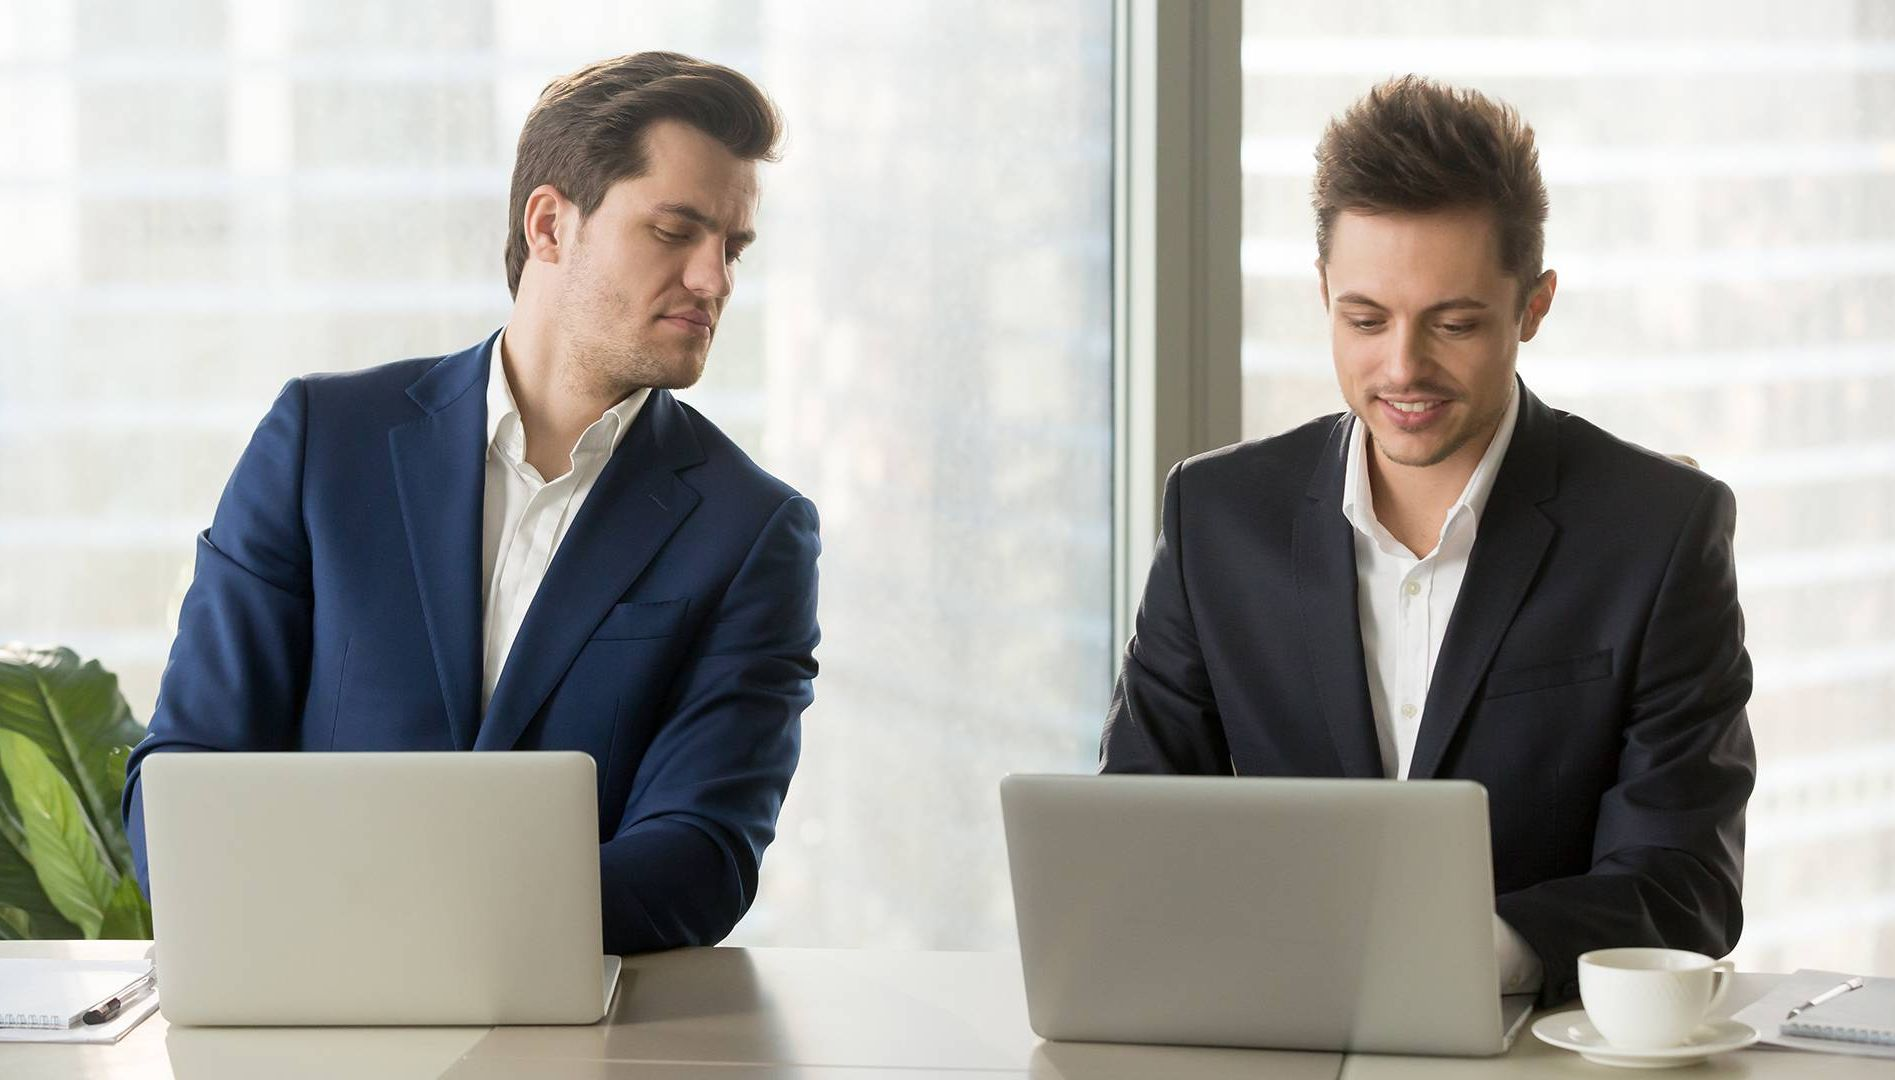 Curious businessman secretly looking at laptop screen of colleague. Rewire PBS Work Copycat